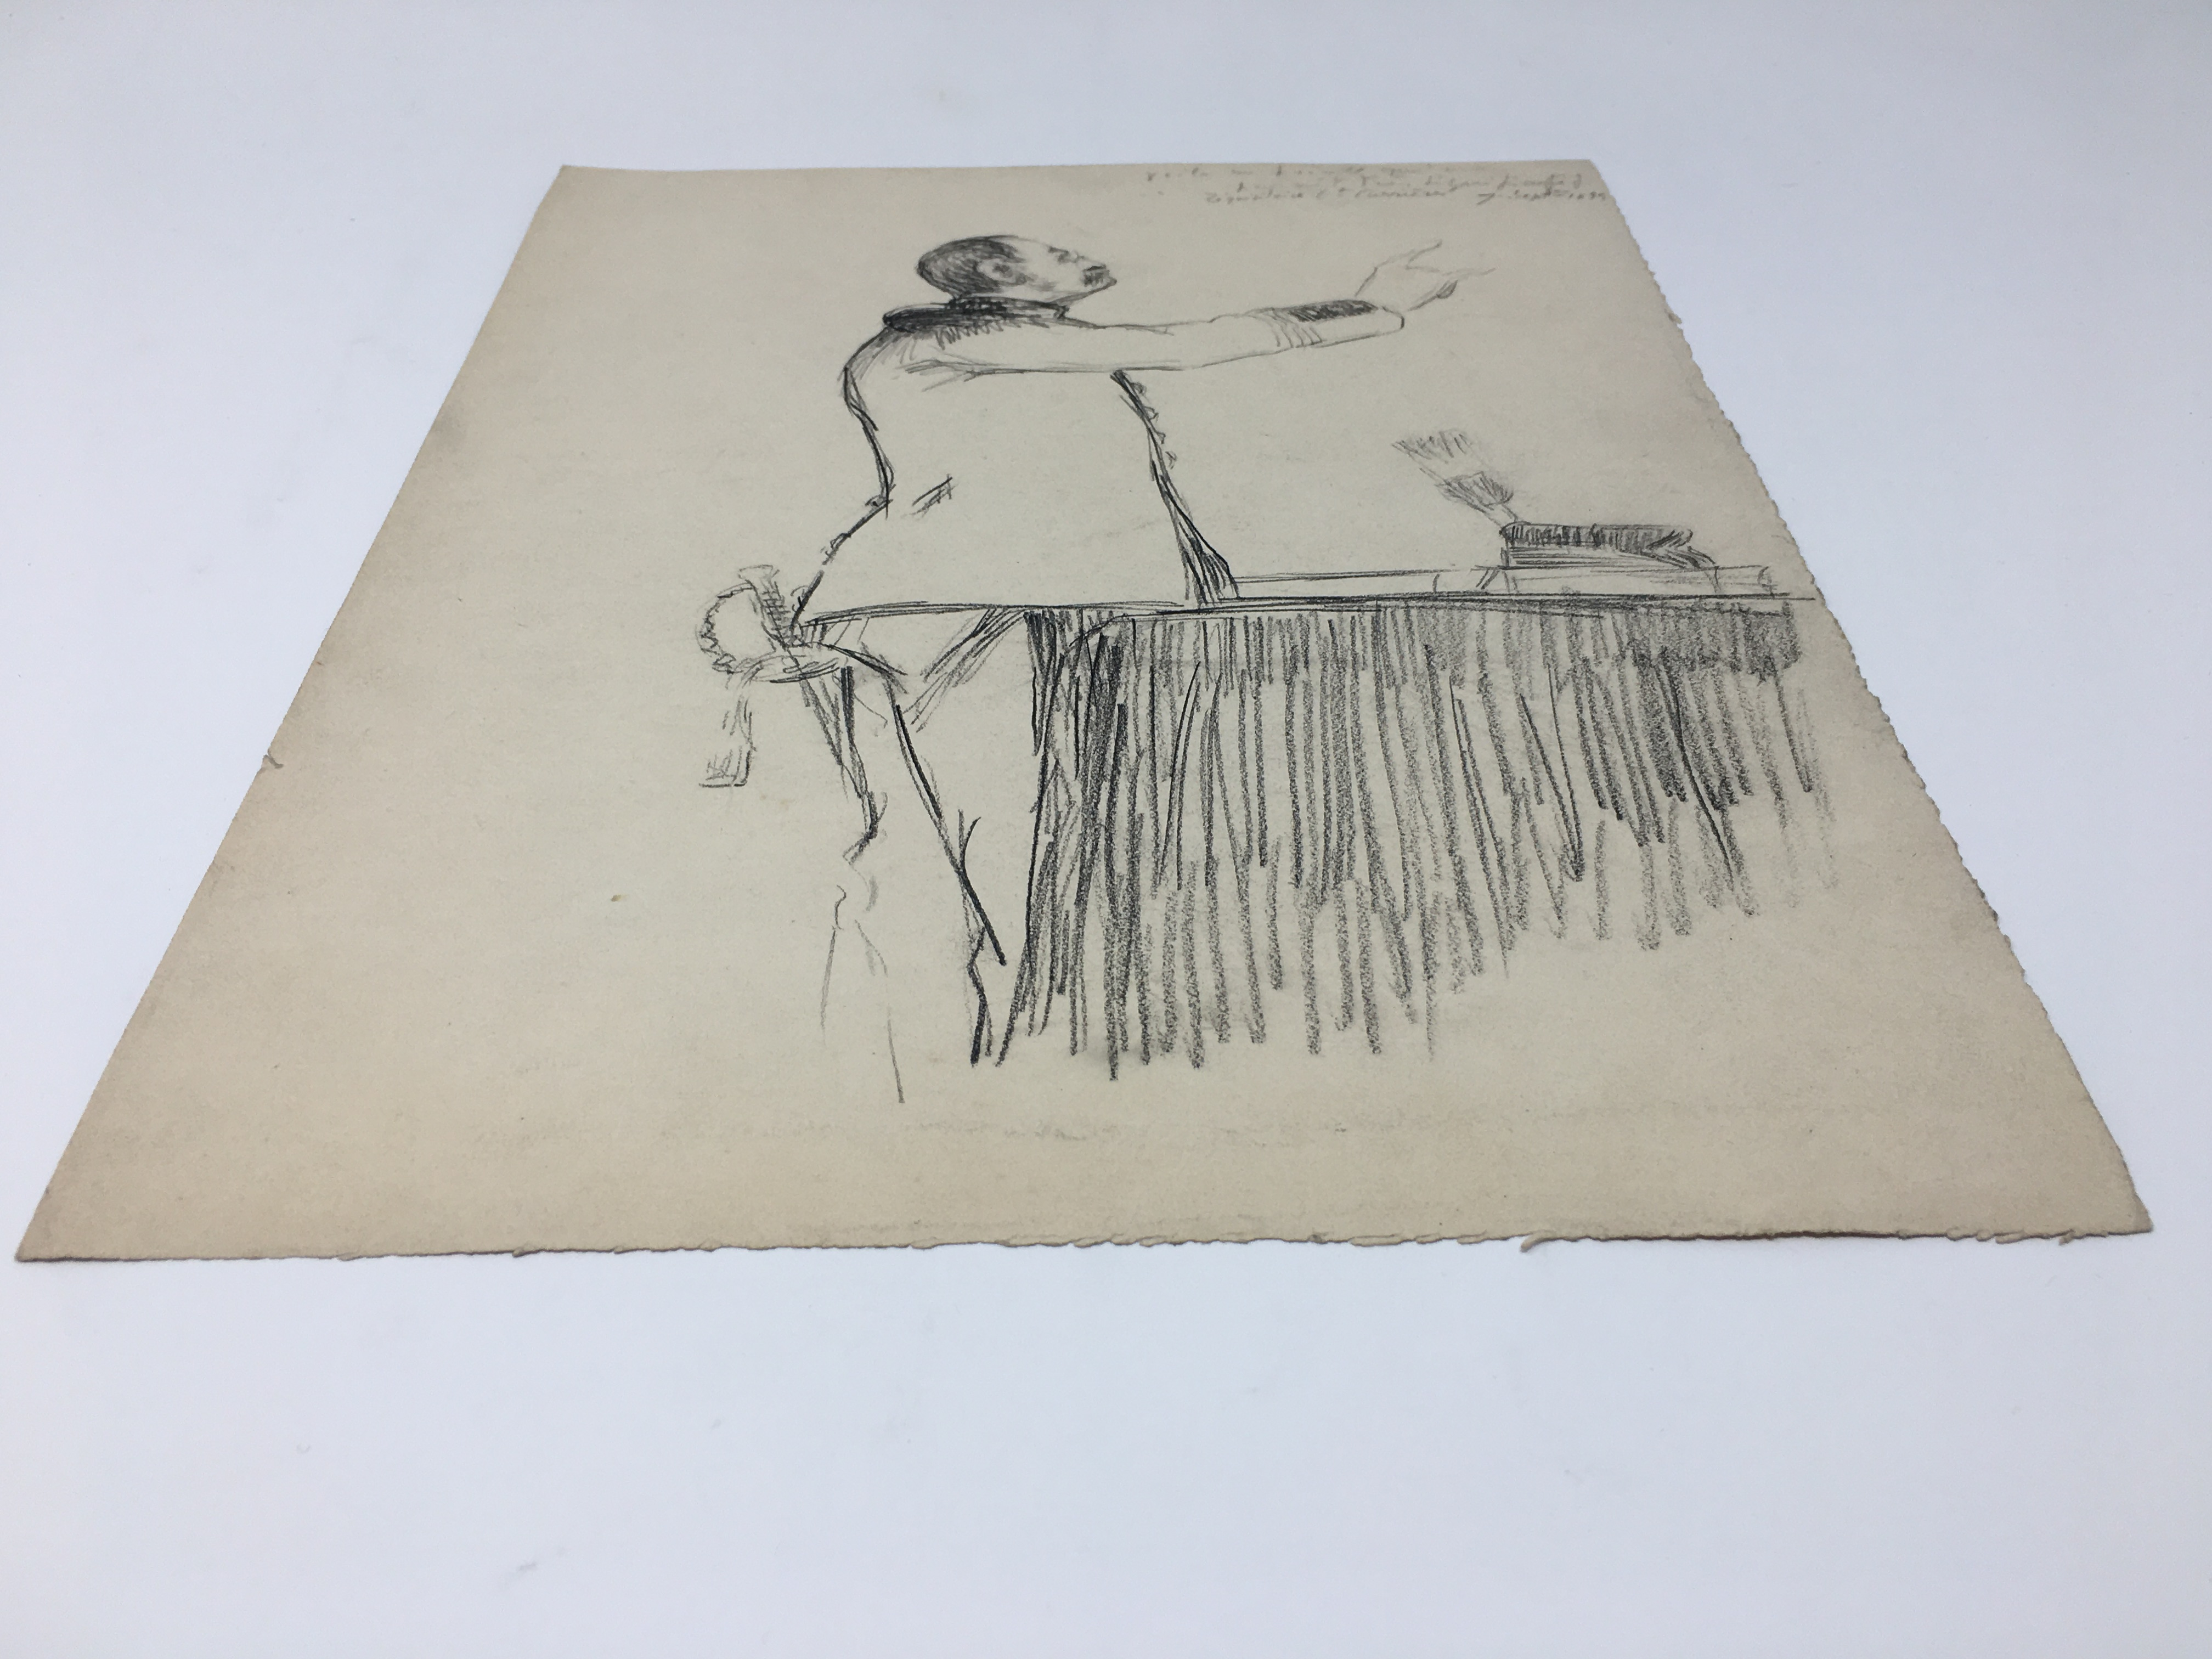 J'Accuse Newspaper, Emile Zola Quote, Signed Dreyfus Portrait, Rare Trial Drawings & Schwartzkoppen - Image 55 of 74